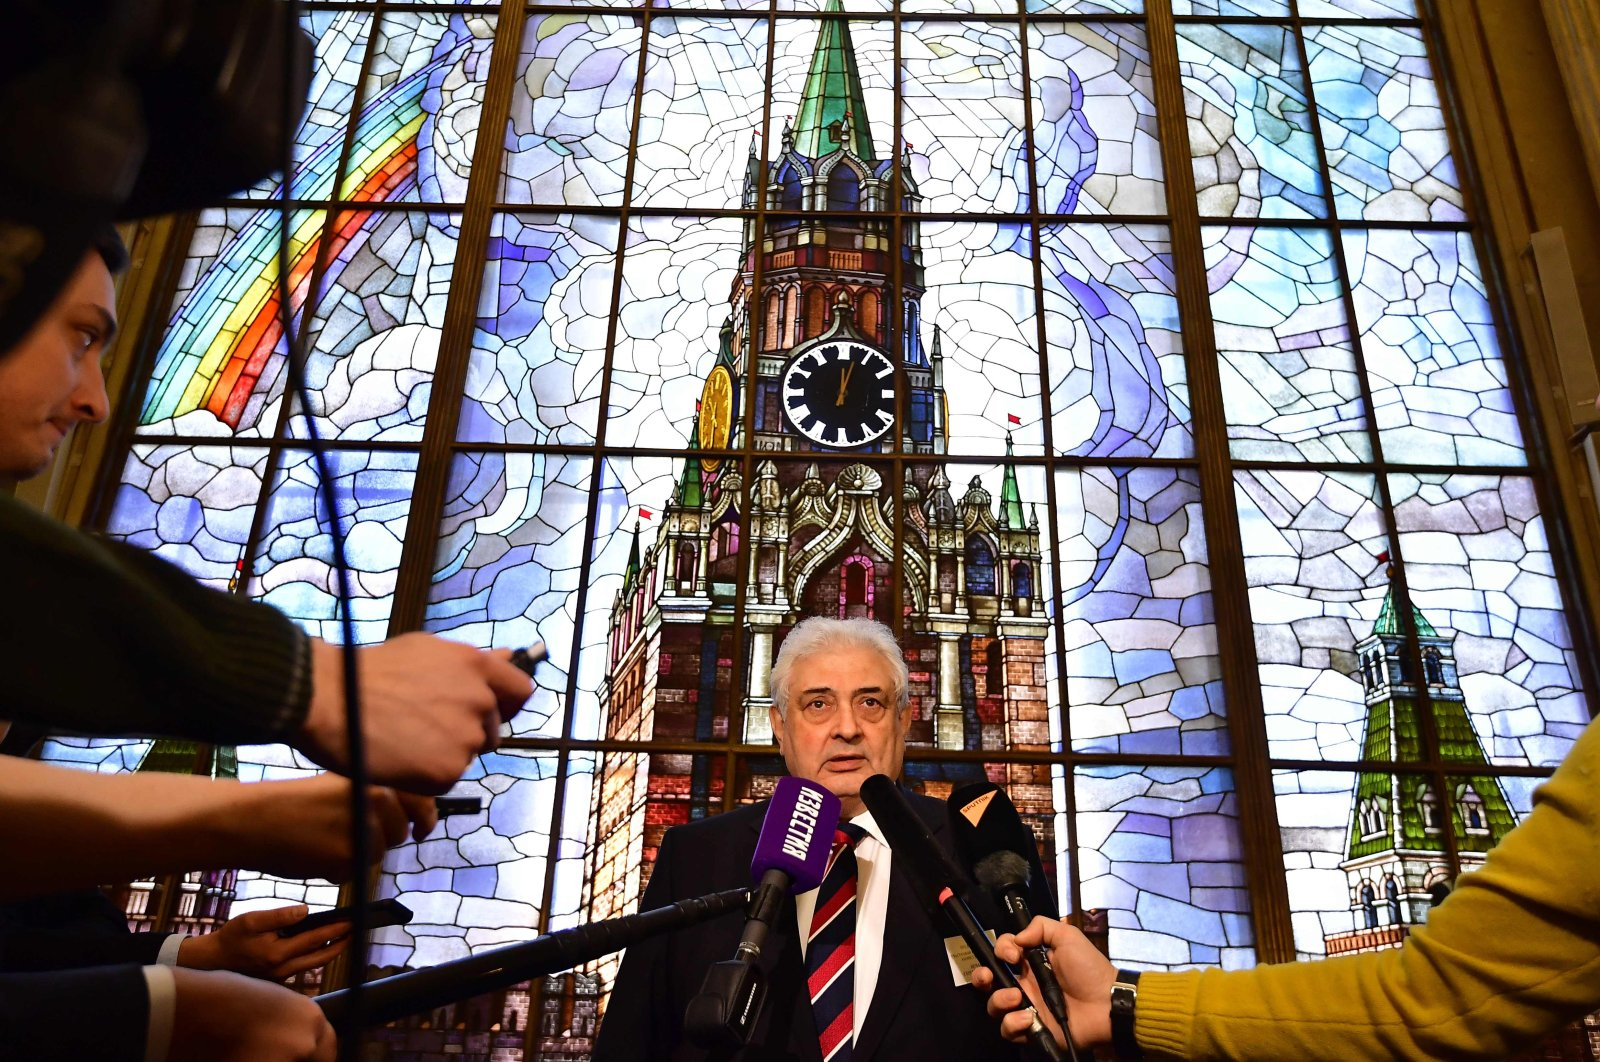 Russian ambassador to Germany Sergey Nechaev (Sergej Netschajew) addressing the media after casting his vote for Russia's presidential elections at the Russian embassy in Berlin, March 18, 2018. (AFP Photo)